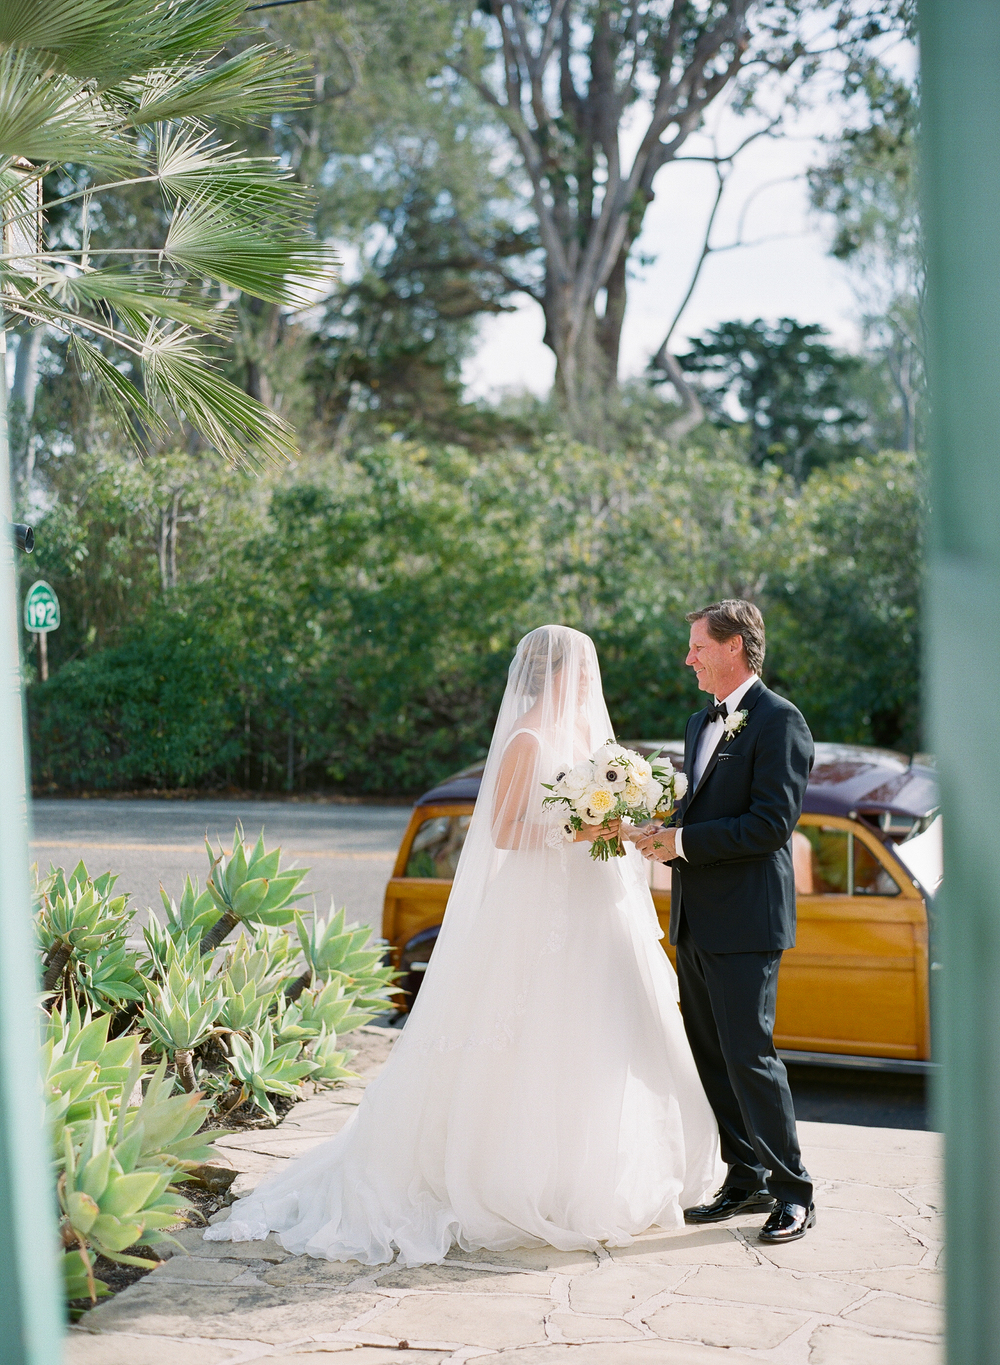 michellebeller.com | Our Lady of Mount Carmel Wedding Ceremony | Reception at Bacara Resort and Spa | Michelle Beller Photography | California Photographer